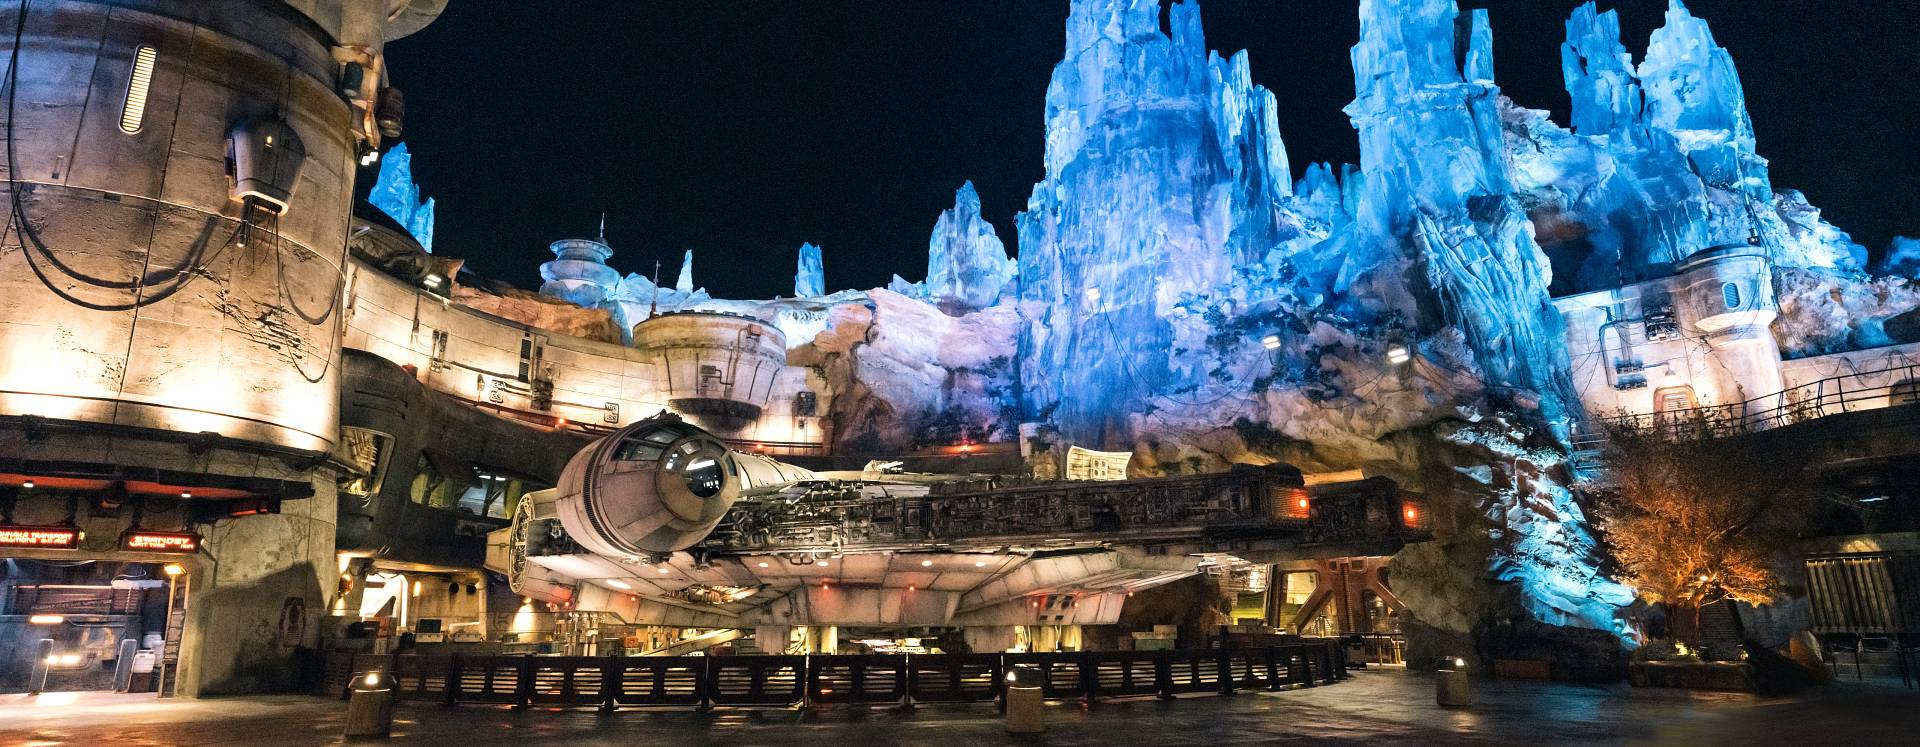 A wide shot of Millenium Falcon: Smuggler's Run in Star Wars: Galaxy's Edge at Disney's Hollywood Studios in the Walt Disney World Resort.